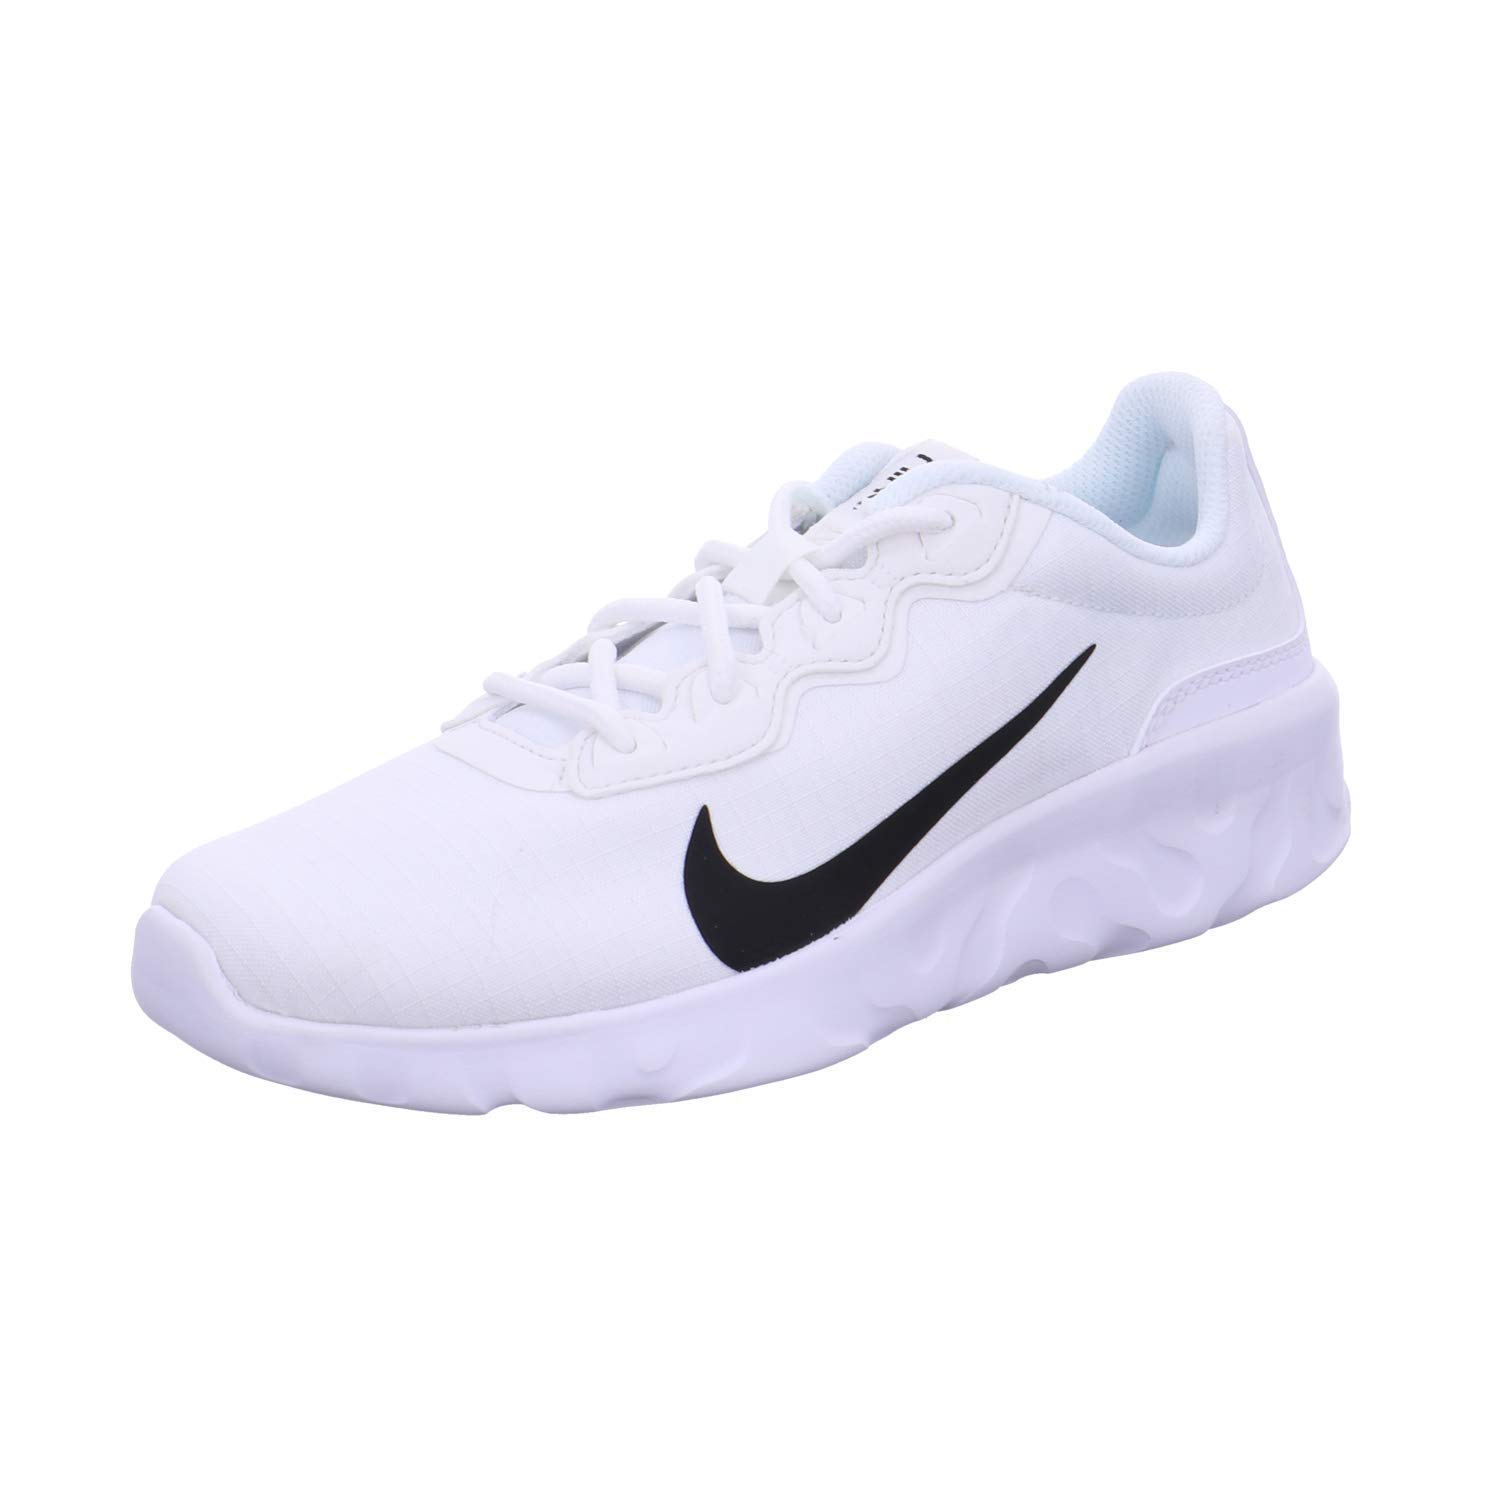 muy agradable diccionario prototipo  Buy Nike Women's WMNS Explore Strada/Smtwht/Black White/Blk Running Shoes-7  UK (41 EU) (9.5 US) (CD7091-101) at Amazon.in